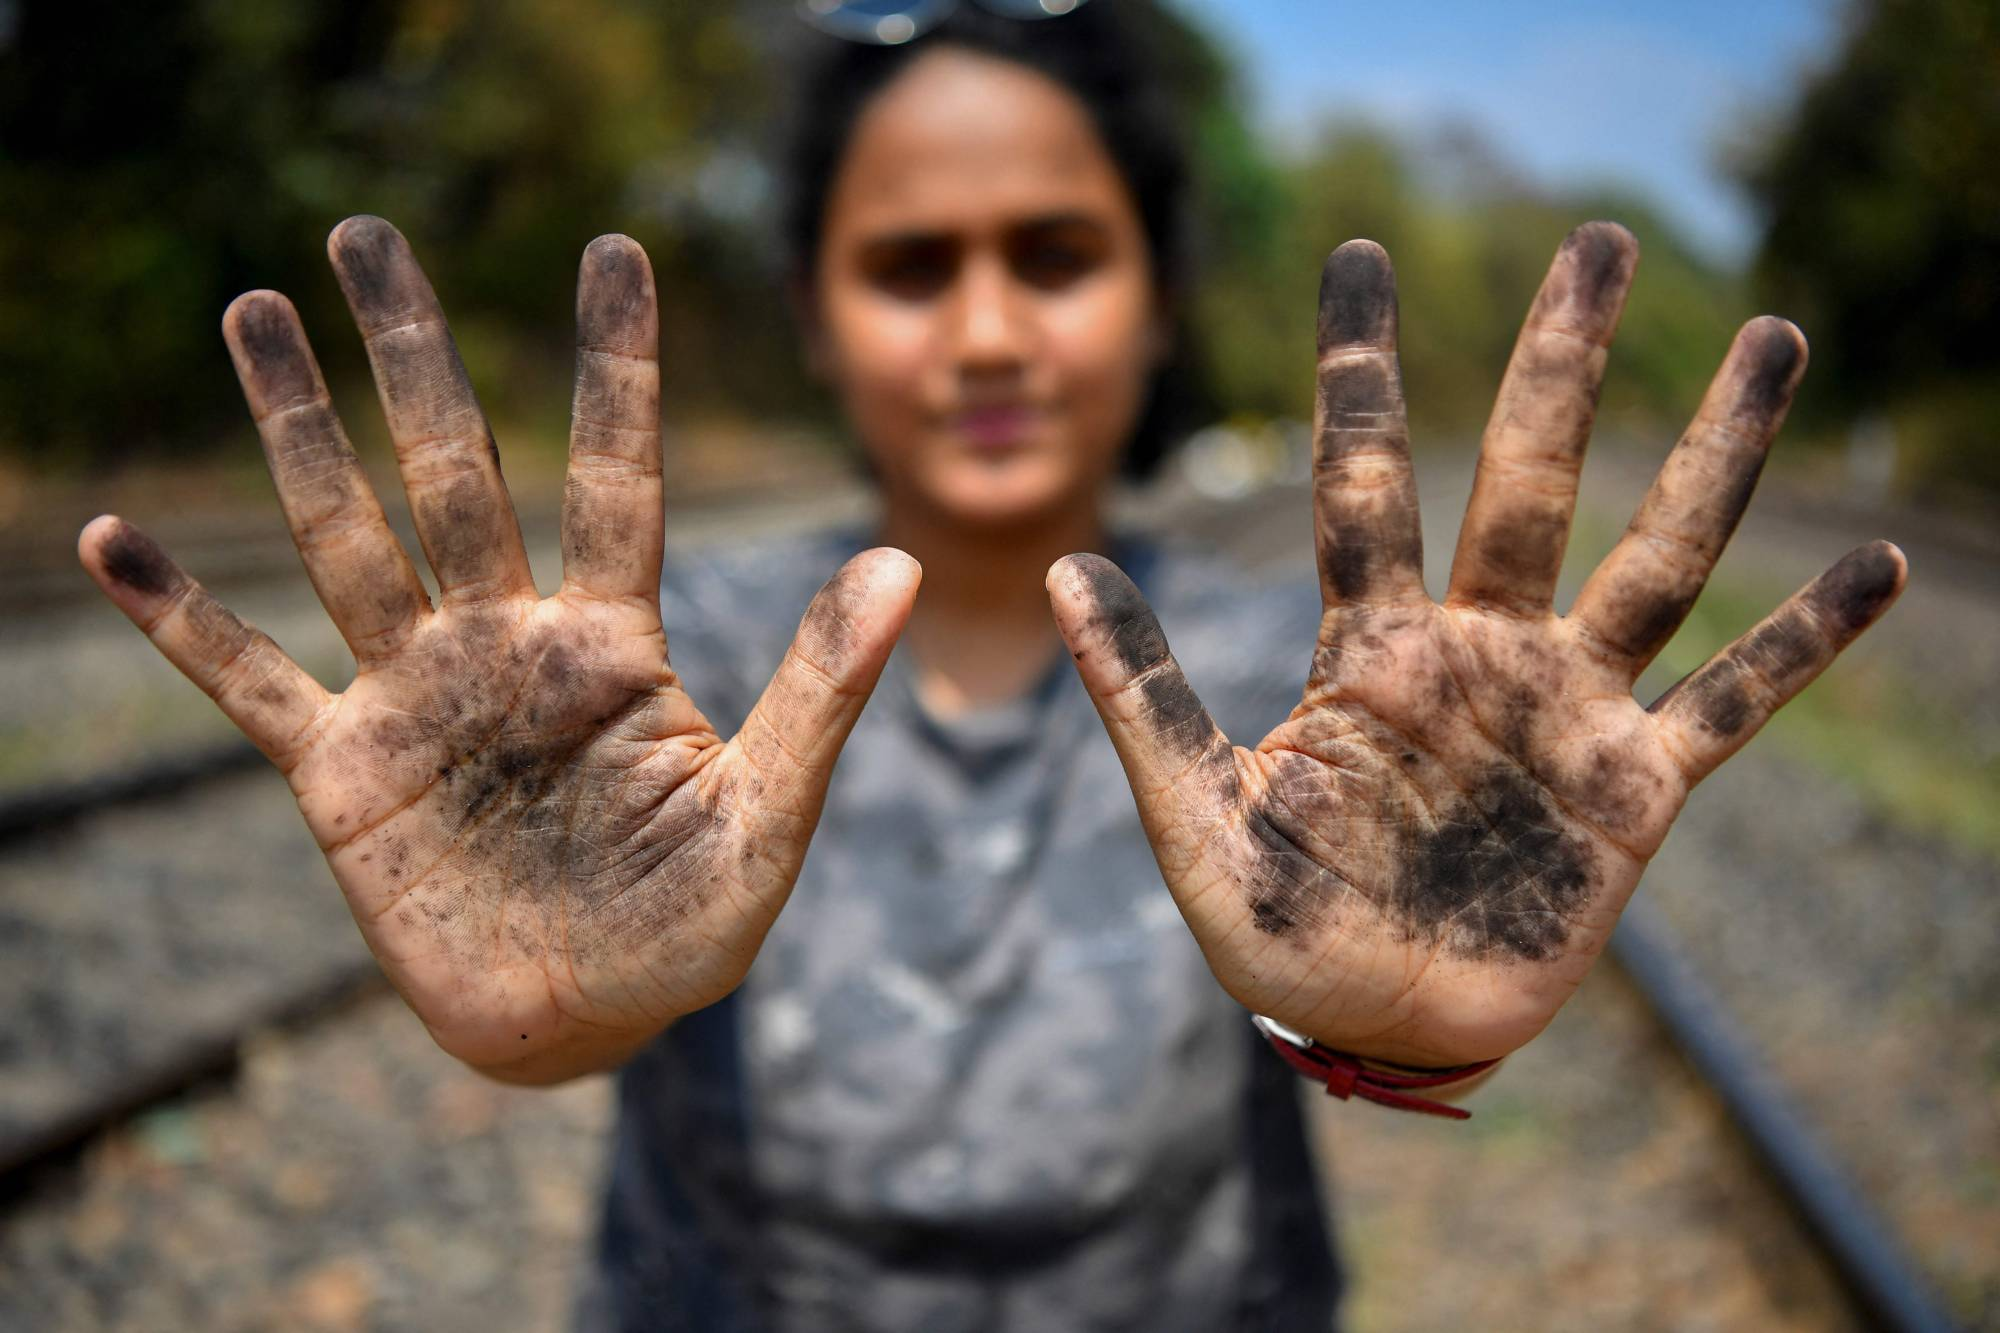 Zoologist Hycintha Aguiar shows her soot-covered hands after handling coal that fell onto railway tracks from a cargo train at the Kulem railway station in Goa state. | AFP-JIJI